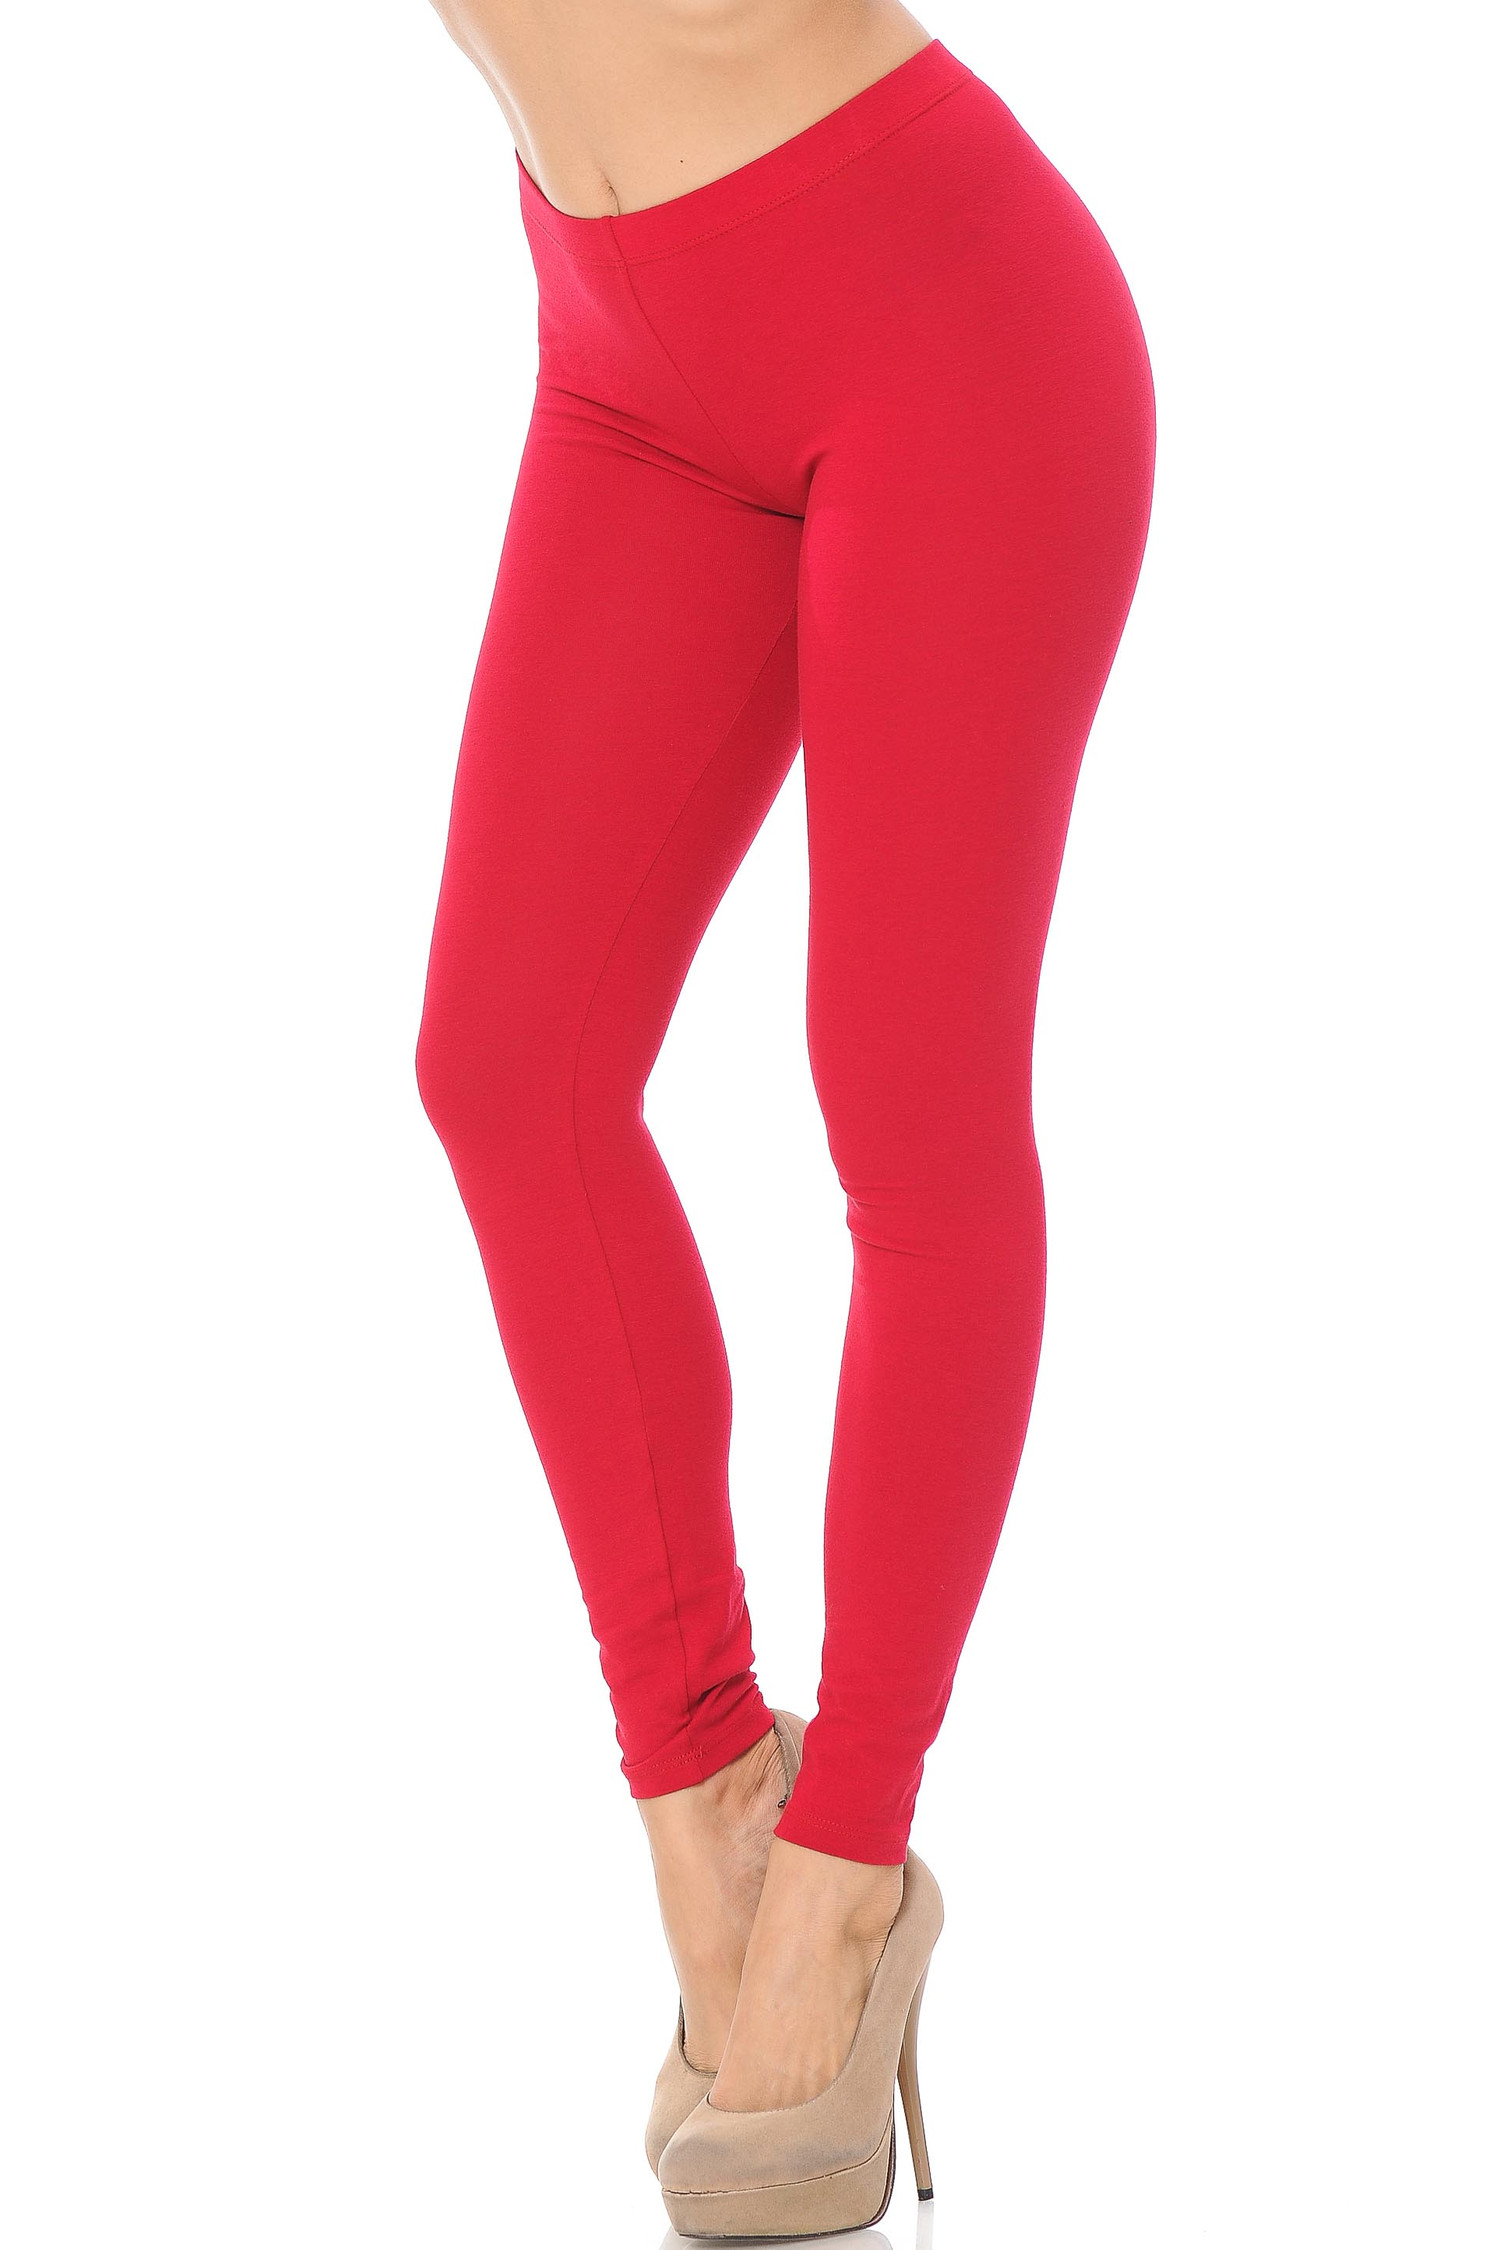 45 degree angle image of female model wearing a red pair of made in the USA cotton leggings showing  a just below the belly button rise and full length going to the ankles.